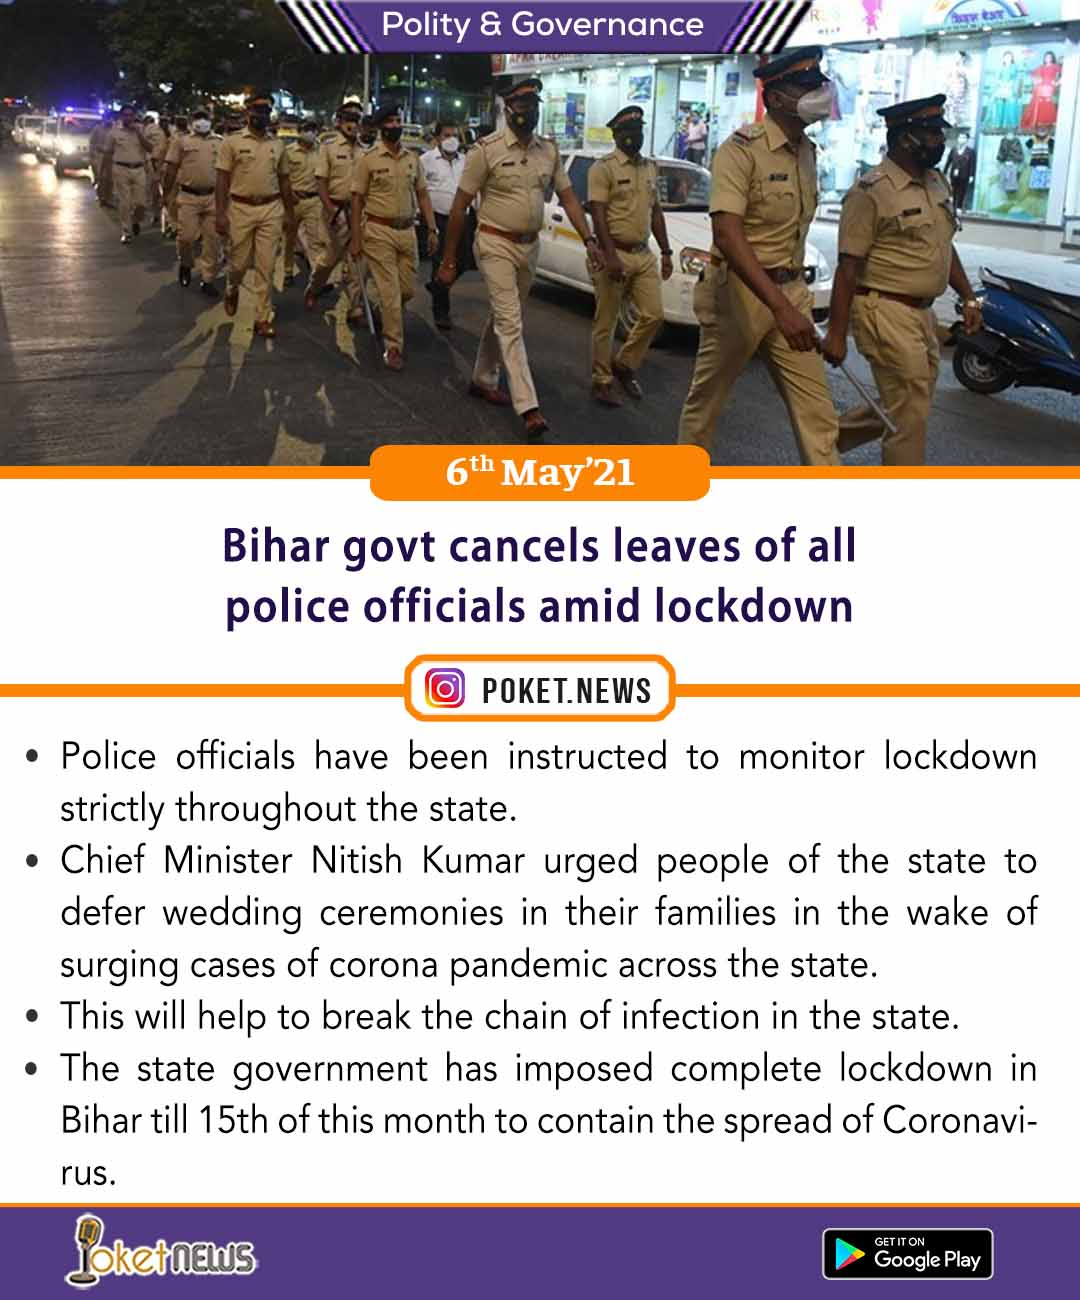 Bihar govt cancels leaves of all police officials amid lockdown